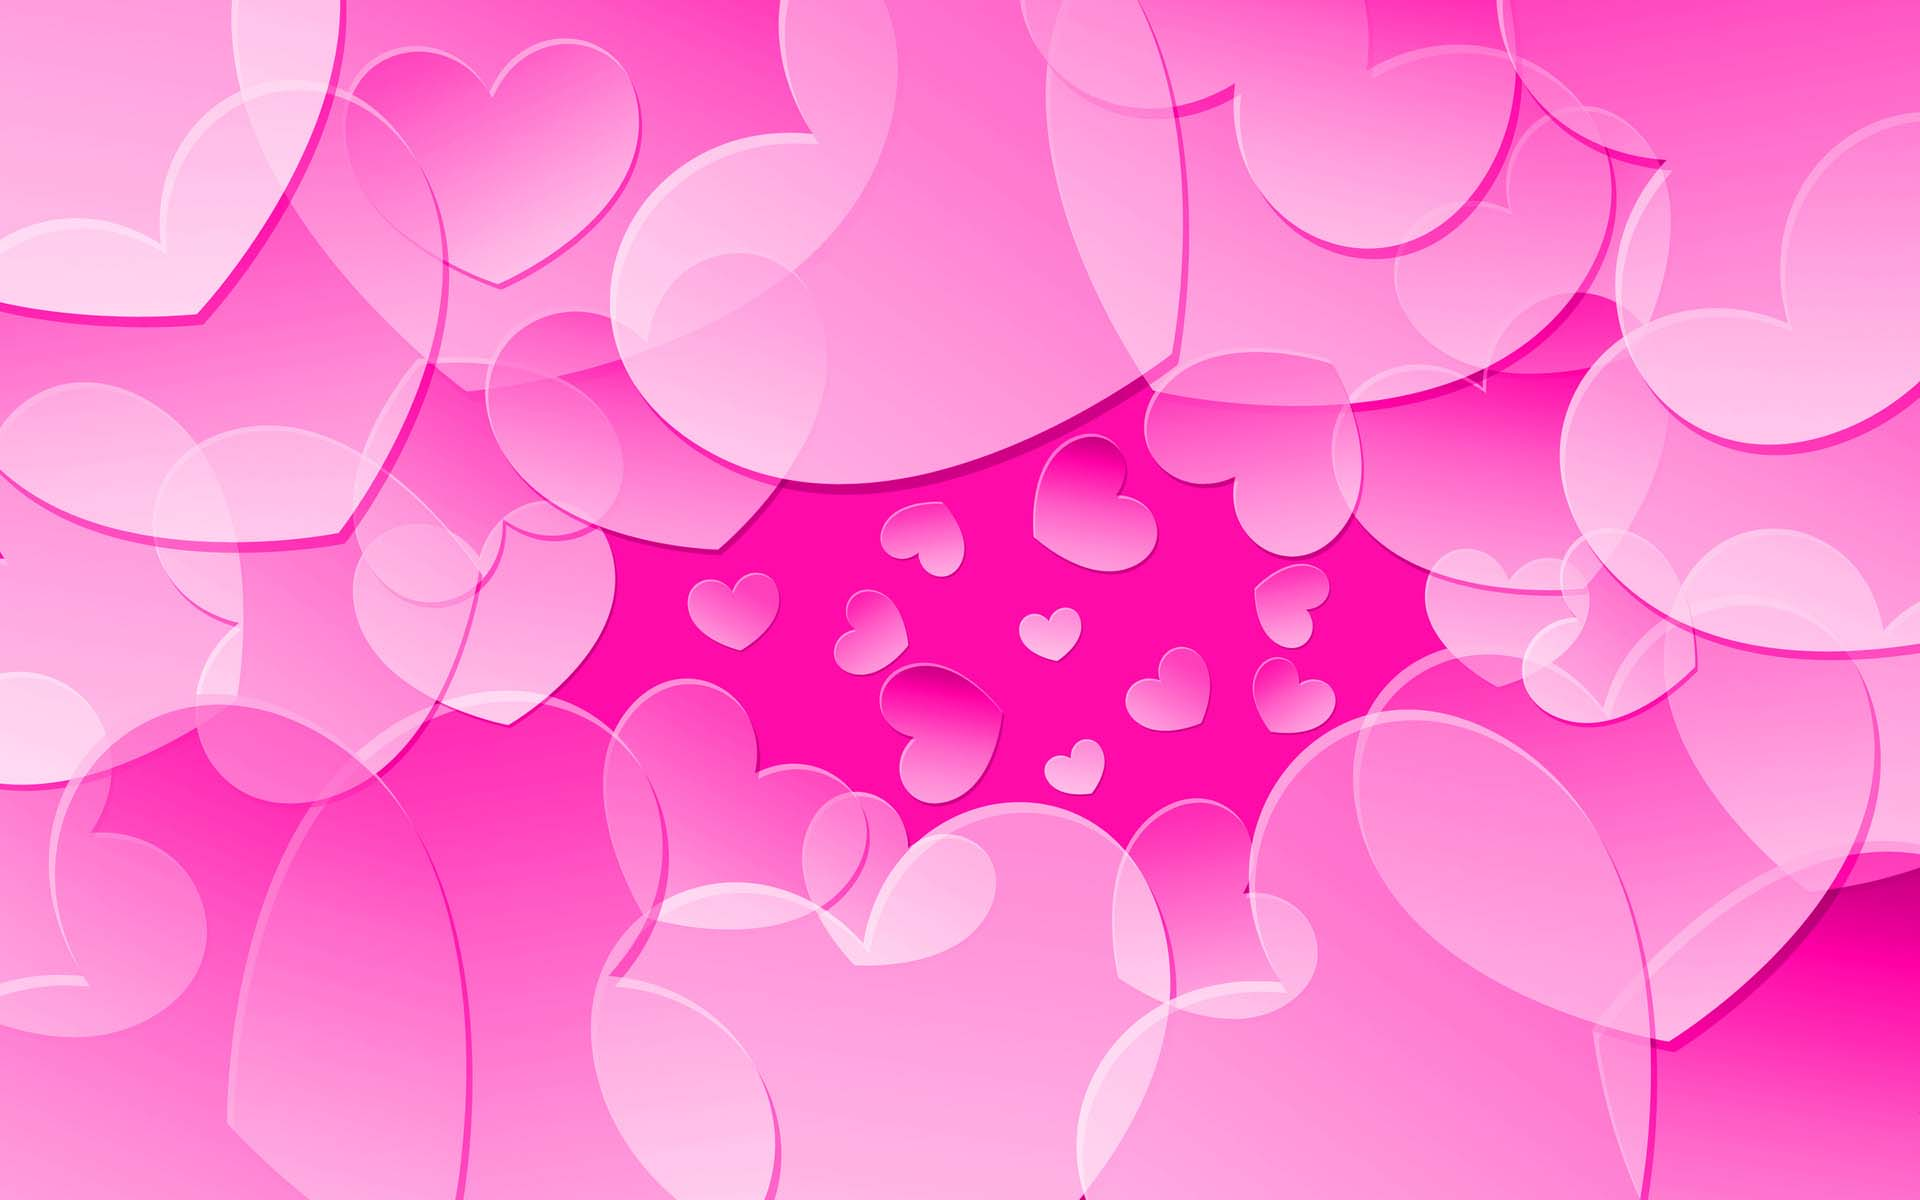 Love Pink Wallpaper Backgrounds : Pink Love Backgrounds - Wallpaper cave